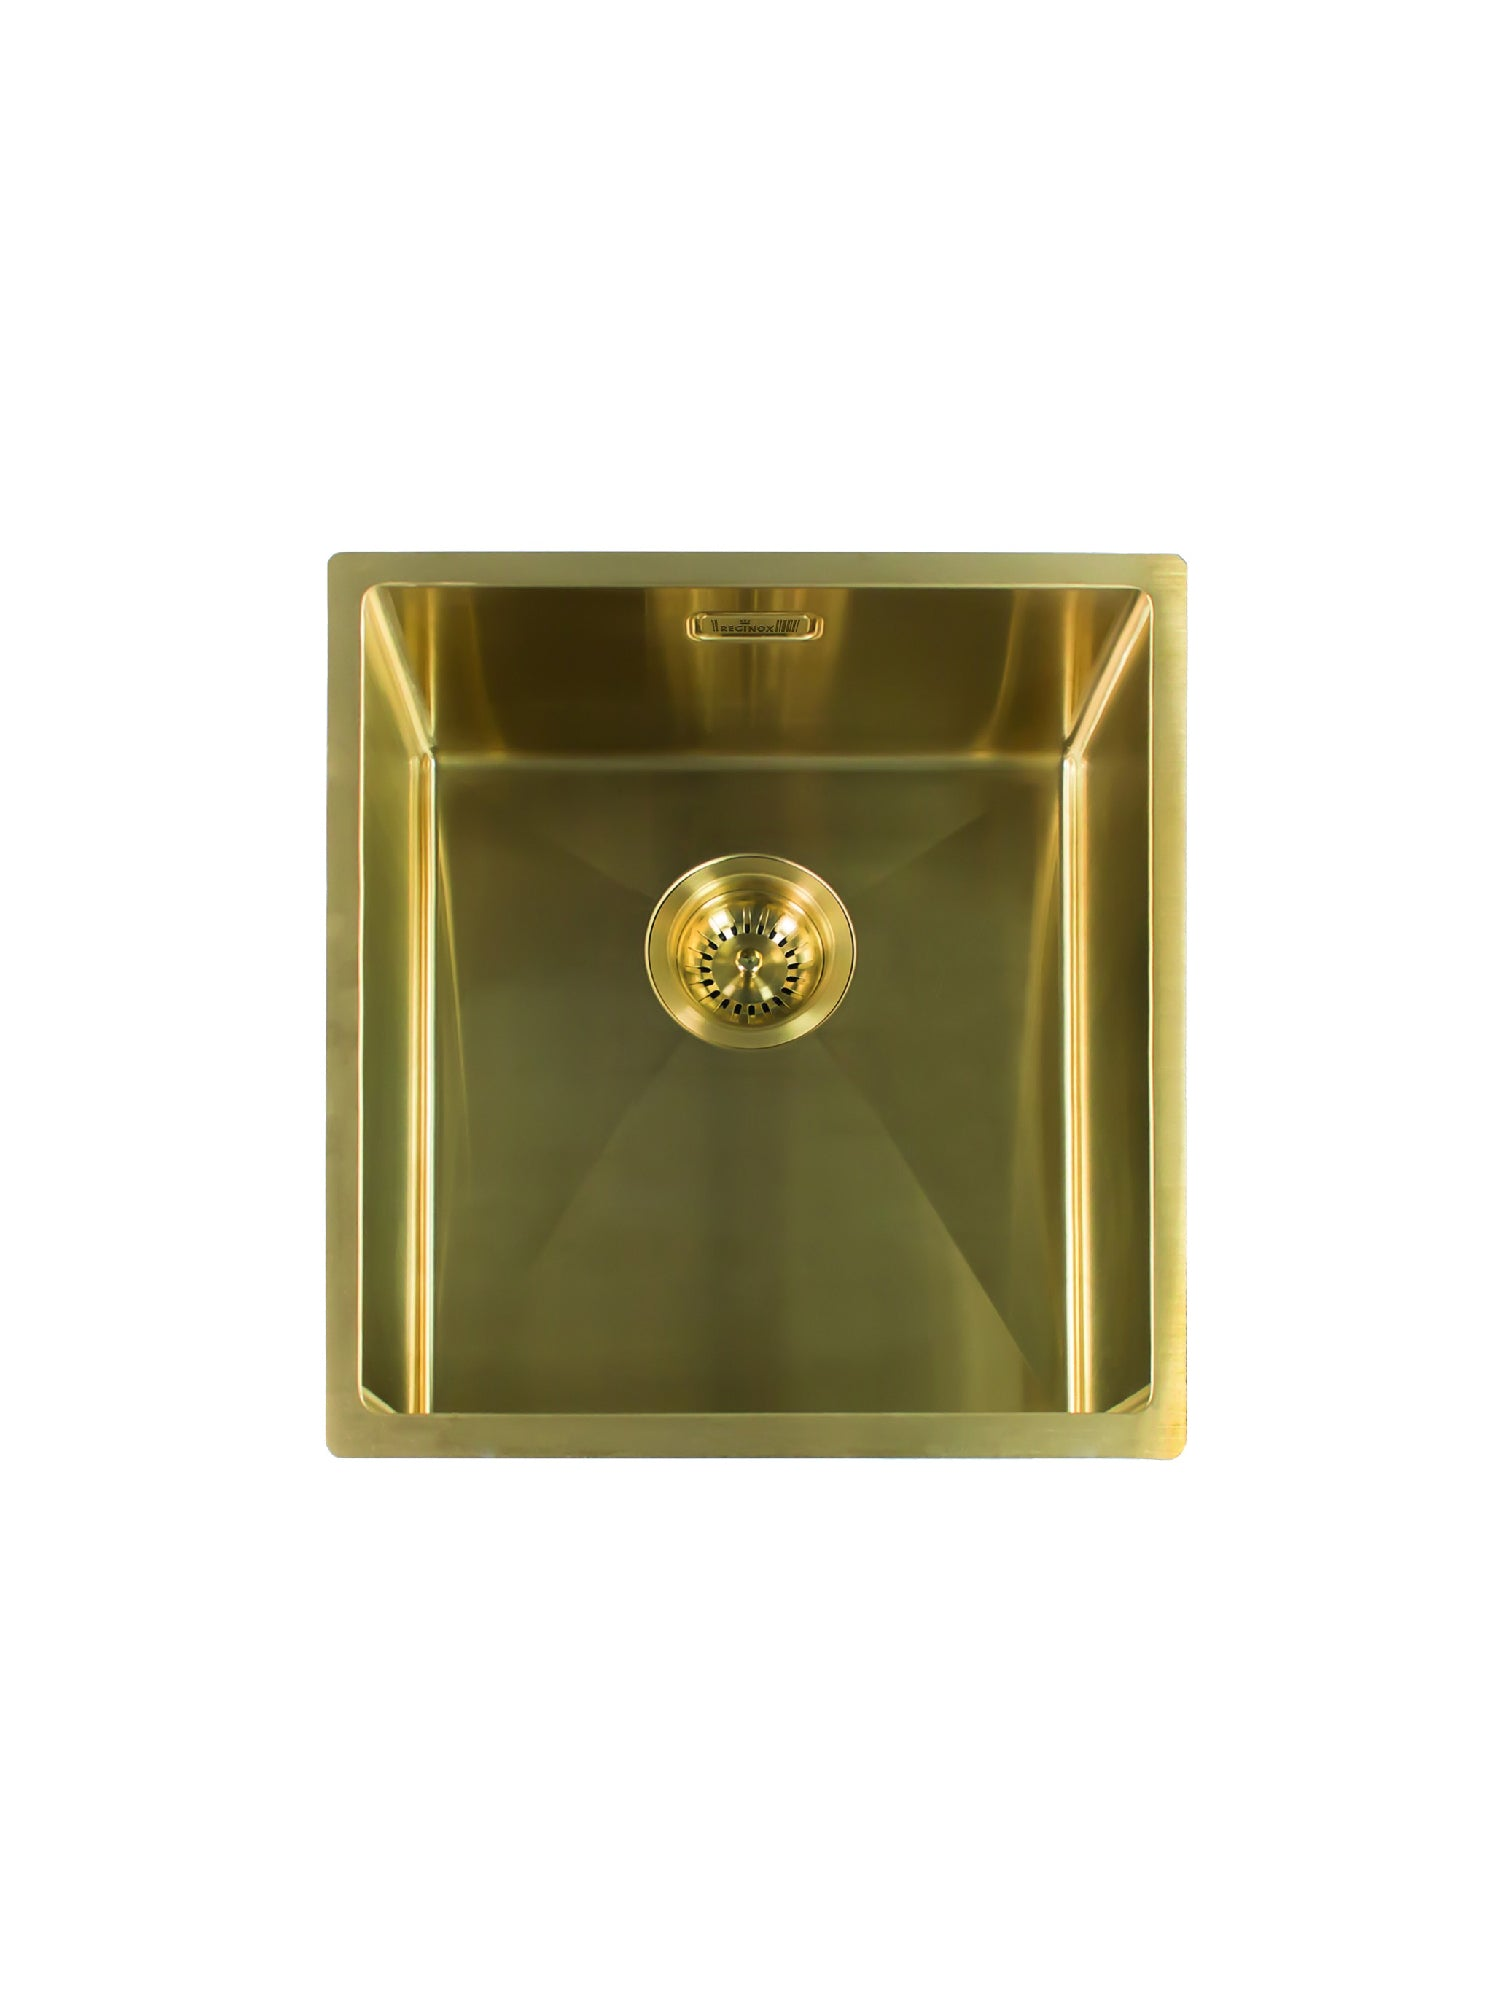 Reginox Miami Gold 40X40L Single Bowl Kitchen Sink – hemsleybathshoppe